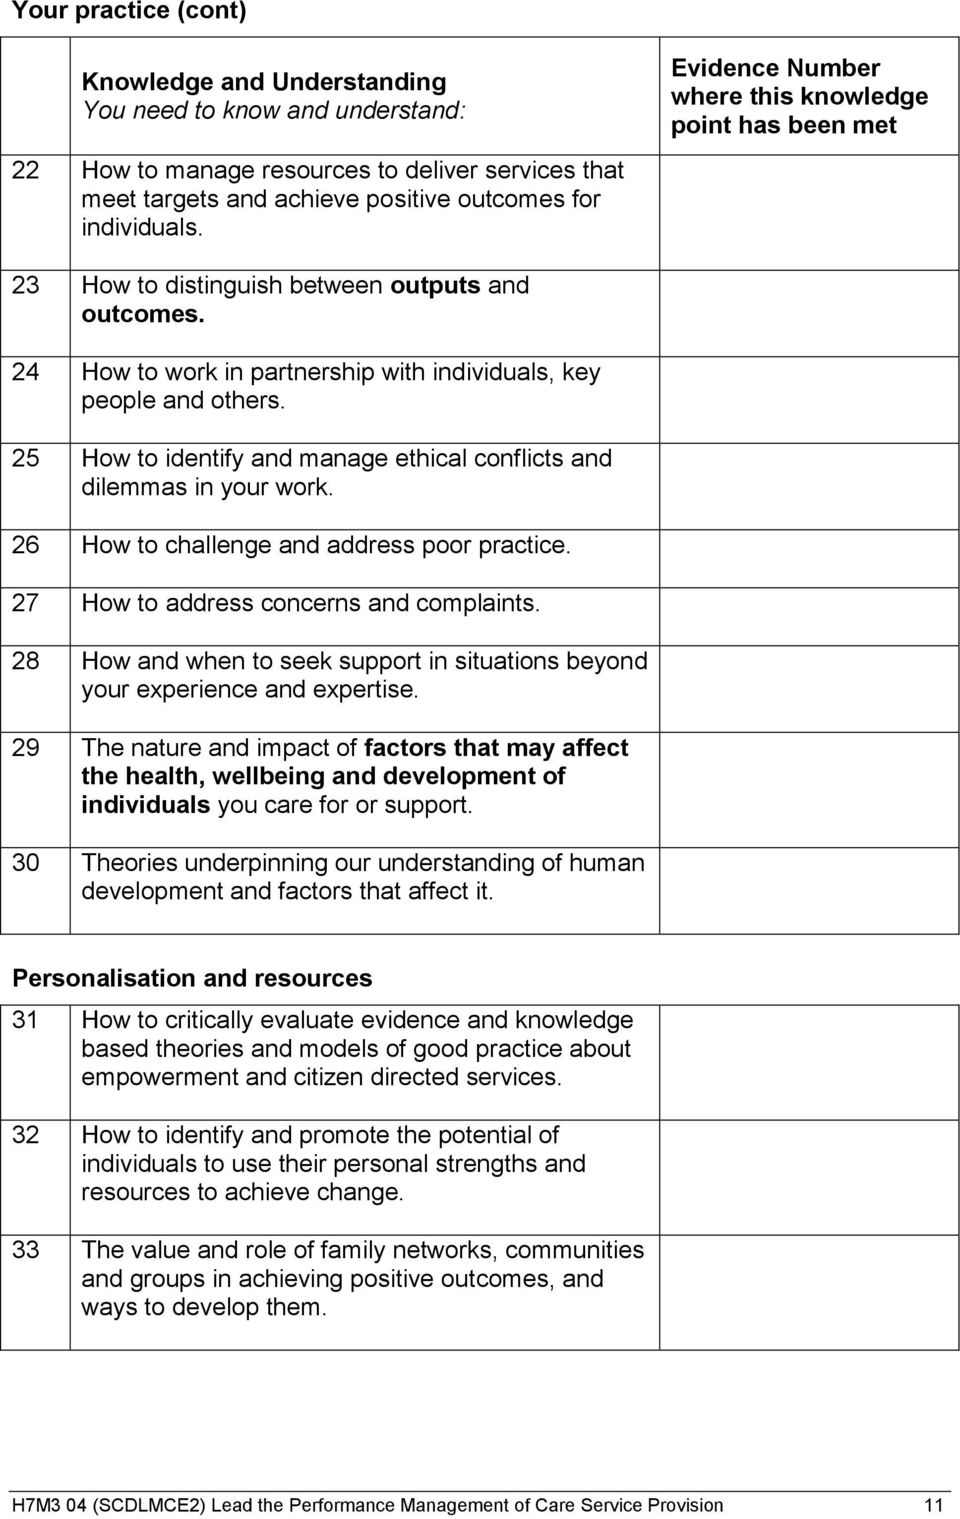 25 How to identify and manage ethical conflicts and dilemmas in your work. 26 How to challenge and address poor practice. 27 How to address concerns and complaints.